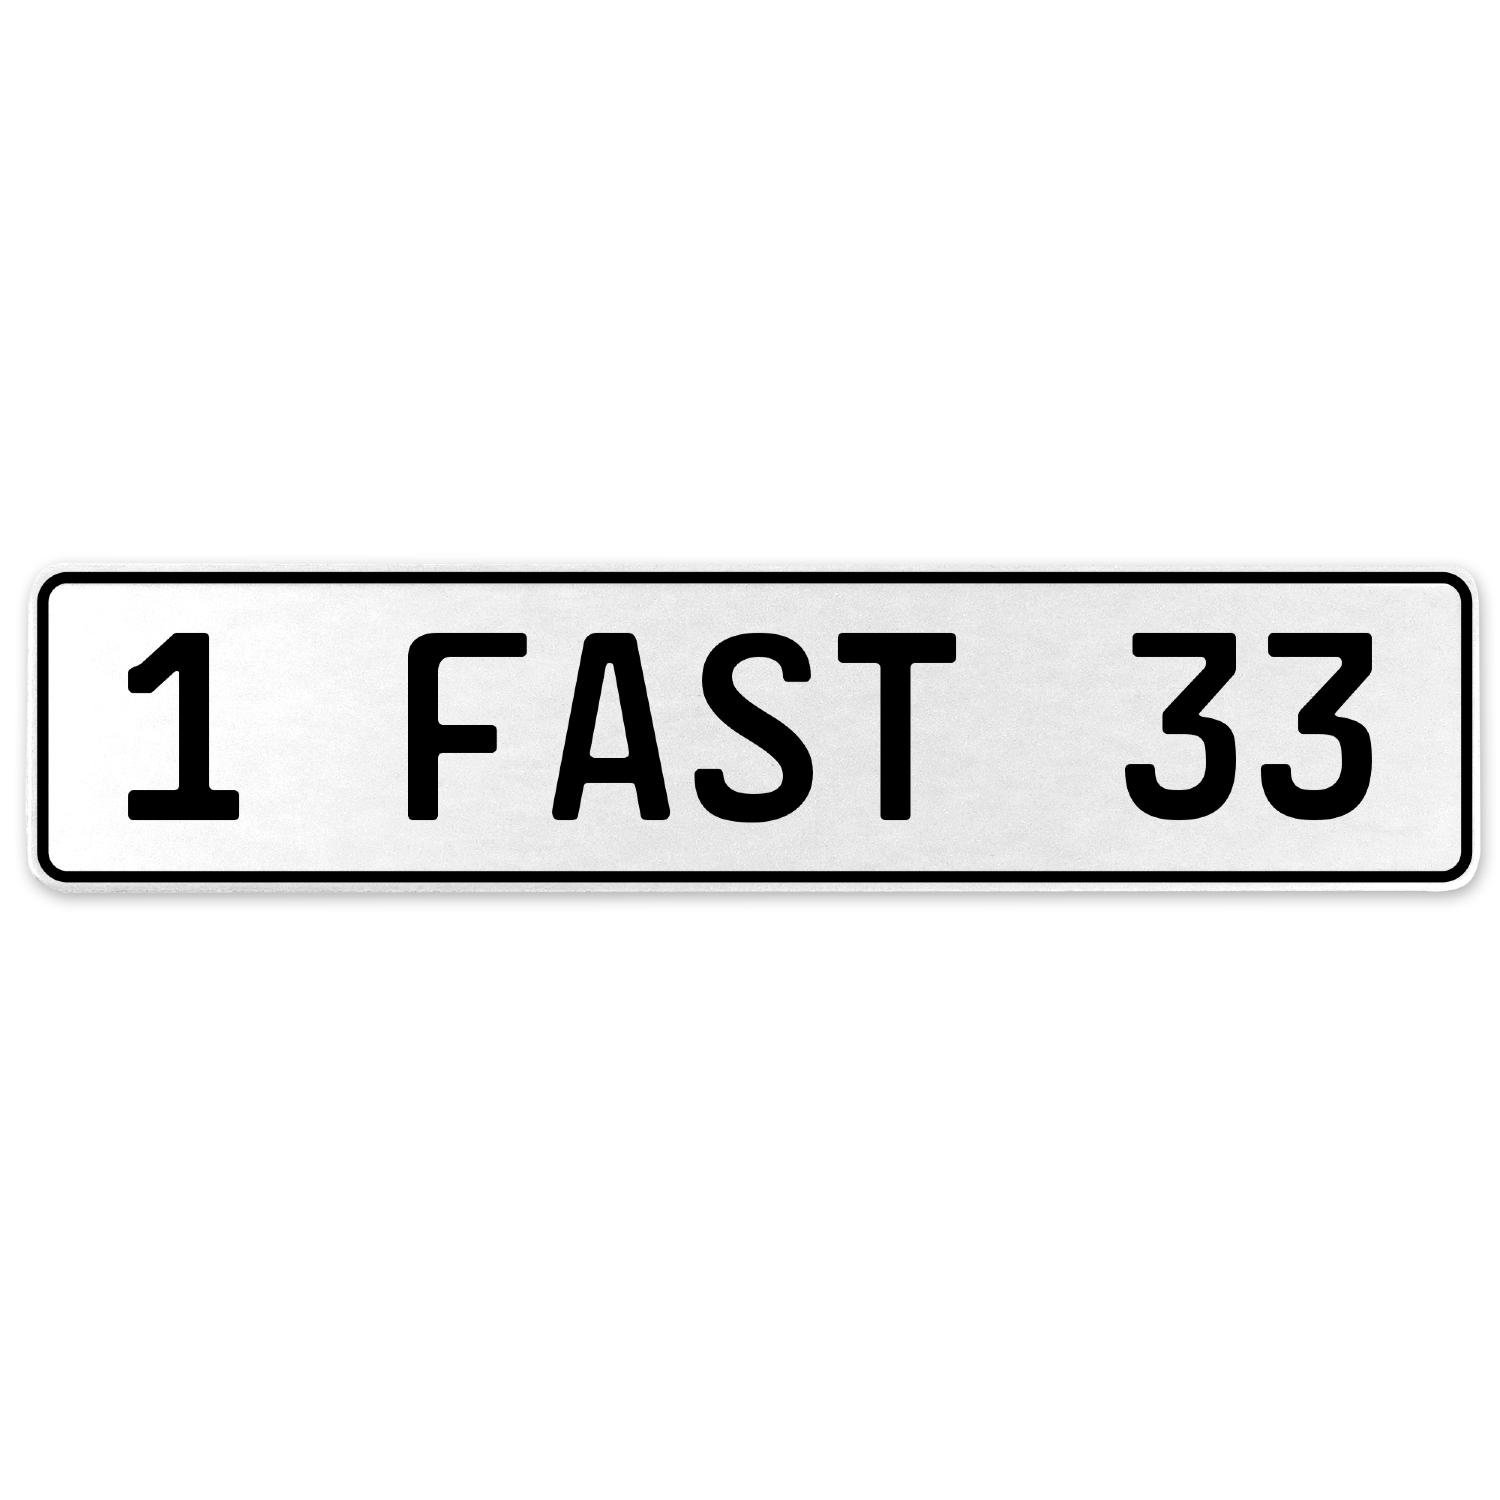 Vintage Parts 557402 1 Fast 33 White Stamped Aluminum European License Plate